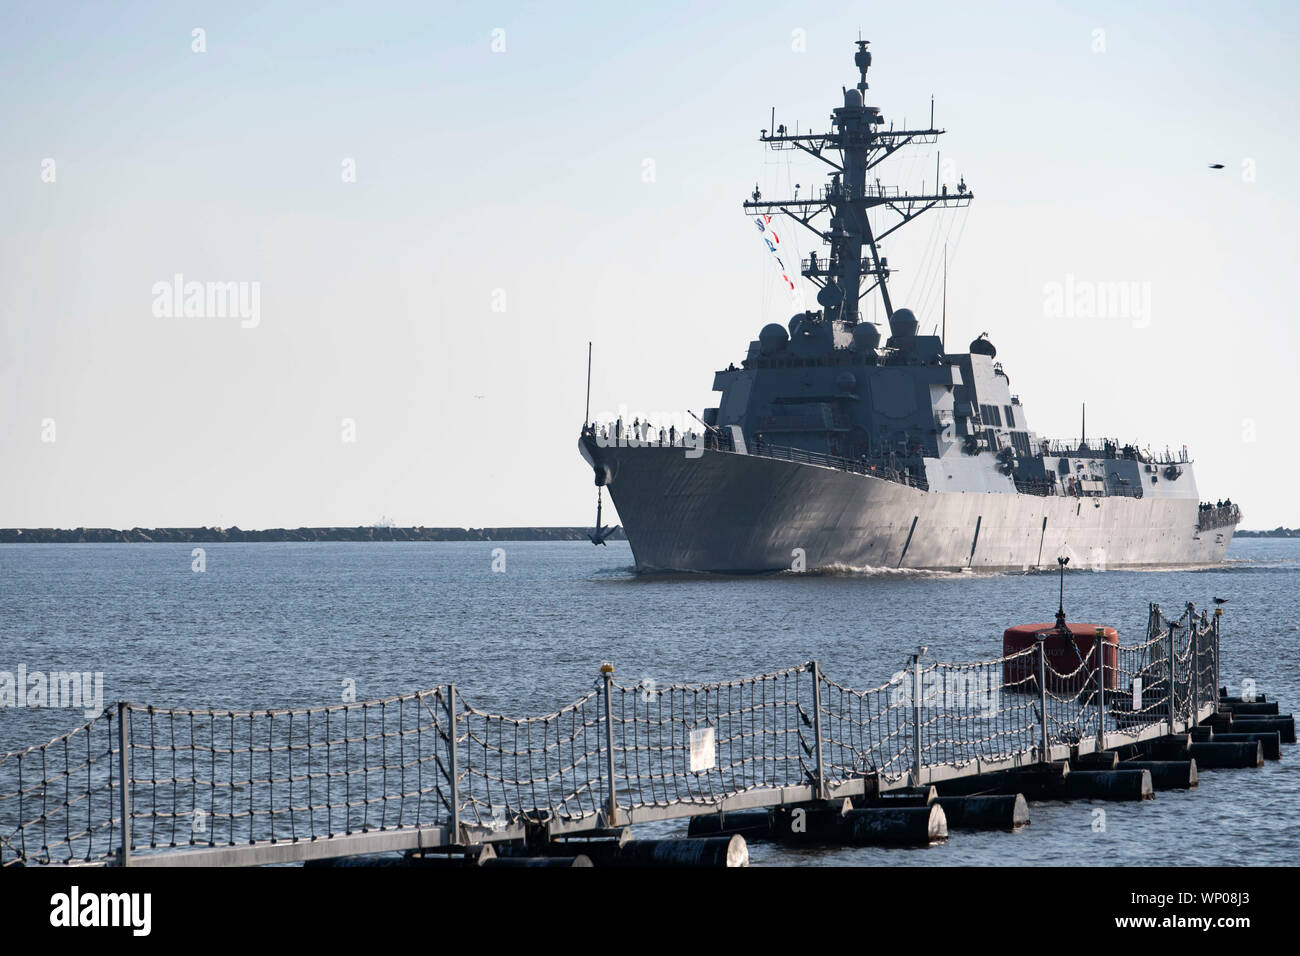 190906-N-DA434-029    JACKSONVILLE, Fla. (Sept. 6, 2019) The Arleigh Burke-class guided-missile destroyer USS Paul Ignatius (DDG 117) returns to Naval Station Mayport. Commander, U.S. 4th Fleet ordered all U.S. Navy ships homeported at Naval Station Mayport to sortie ahead of Hurricane Dorian on Aug. 30, 2019. Dorian brought high winds and heavy rain to the area.  (U.S. Navy photo by Mass Communication Specialist 3rd Class Alana Langdon/Released) Stock Photo